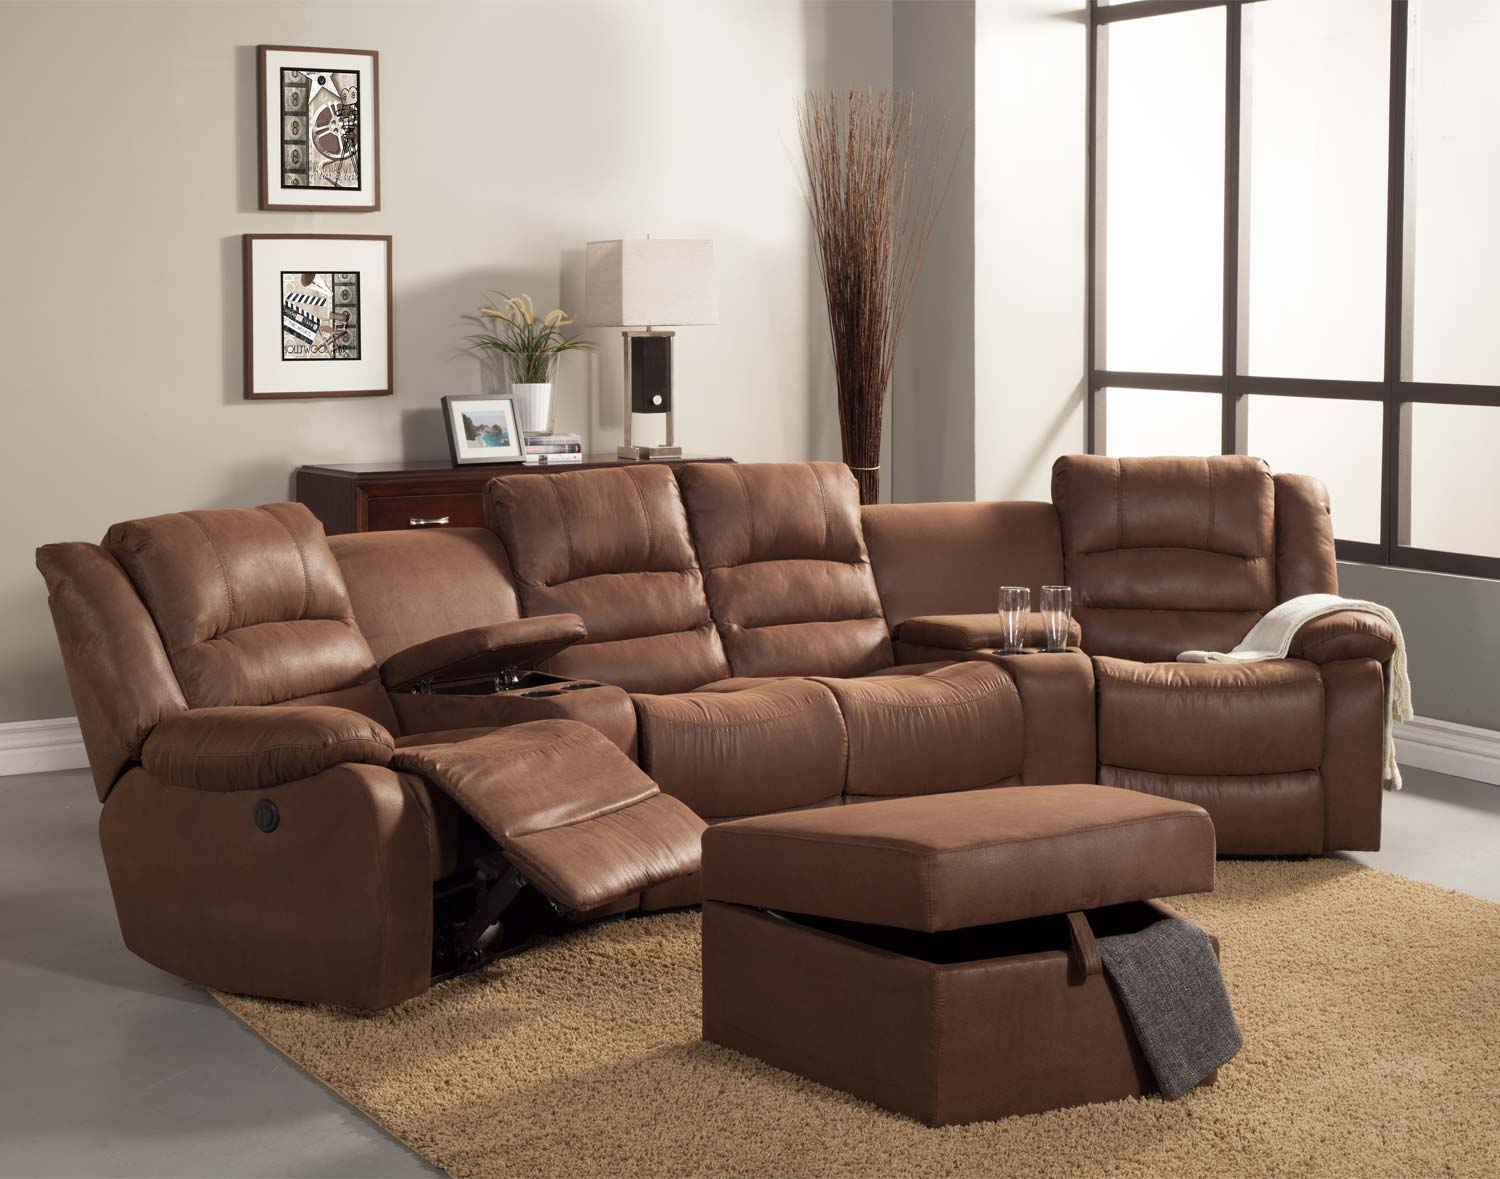 Homelegance Tucker Sectional Sofa Set Brown Bomber Jacket Microfiber U9799 SECT P 50752 on ashley brown microfiber reclining couch